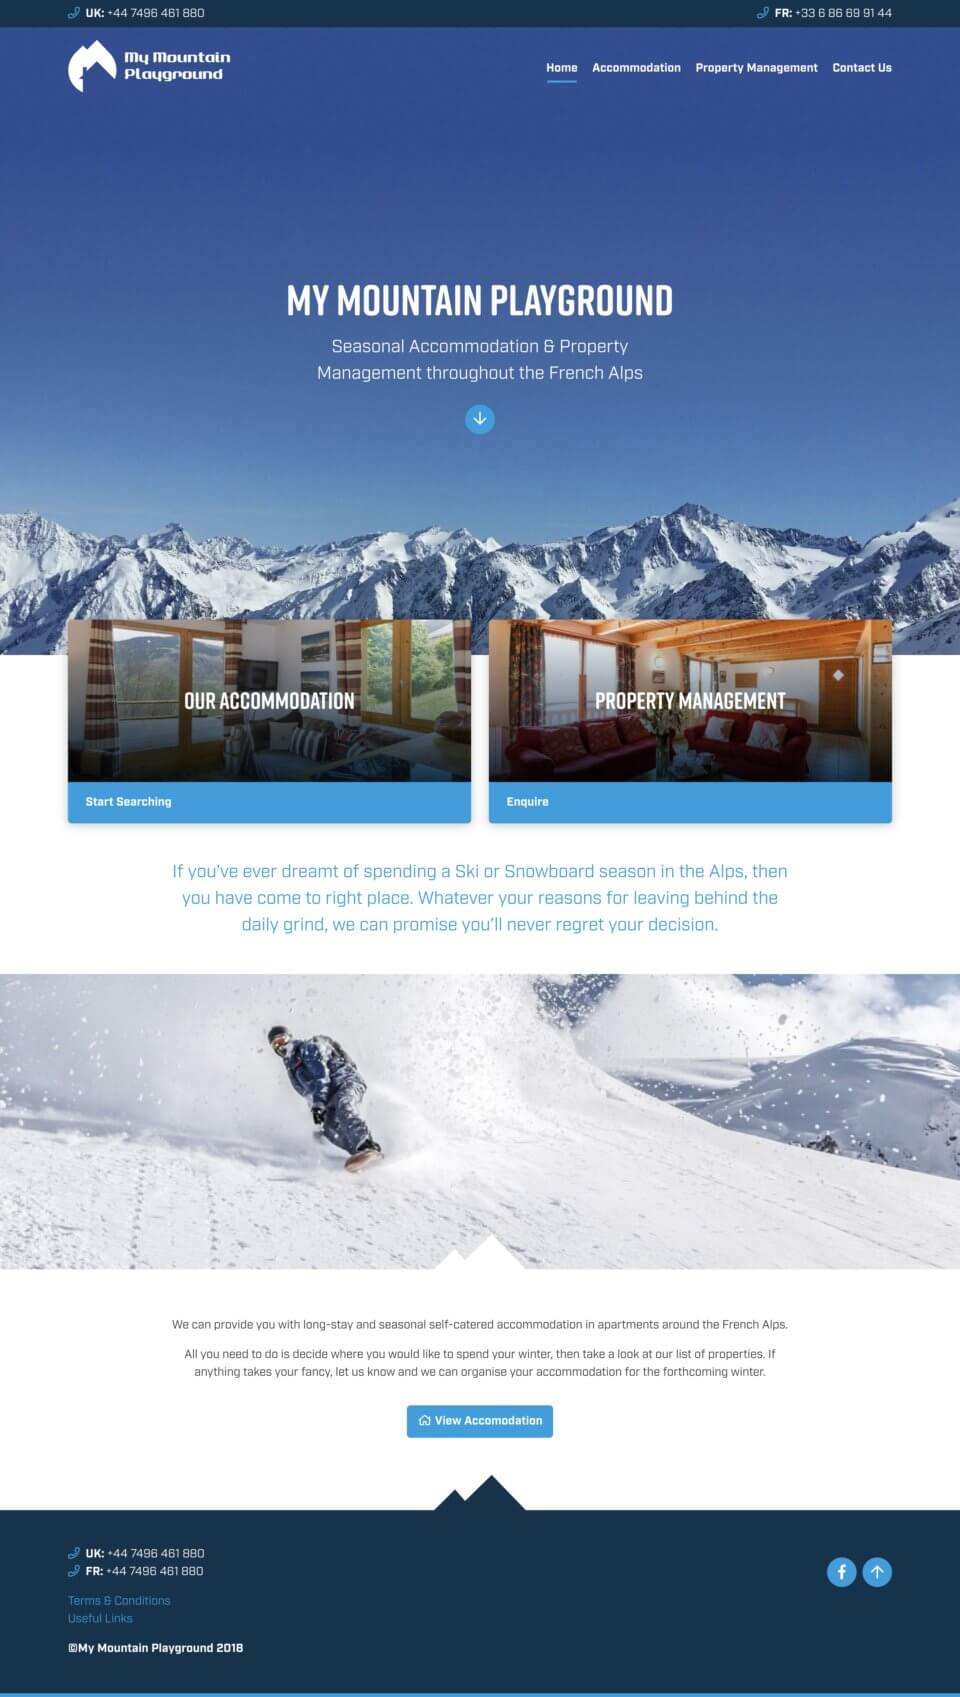 My Mountain Playground - Home Page